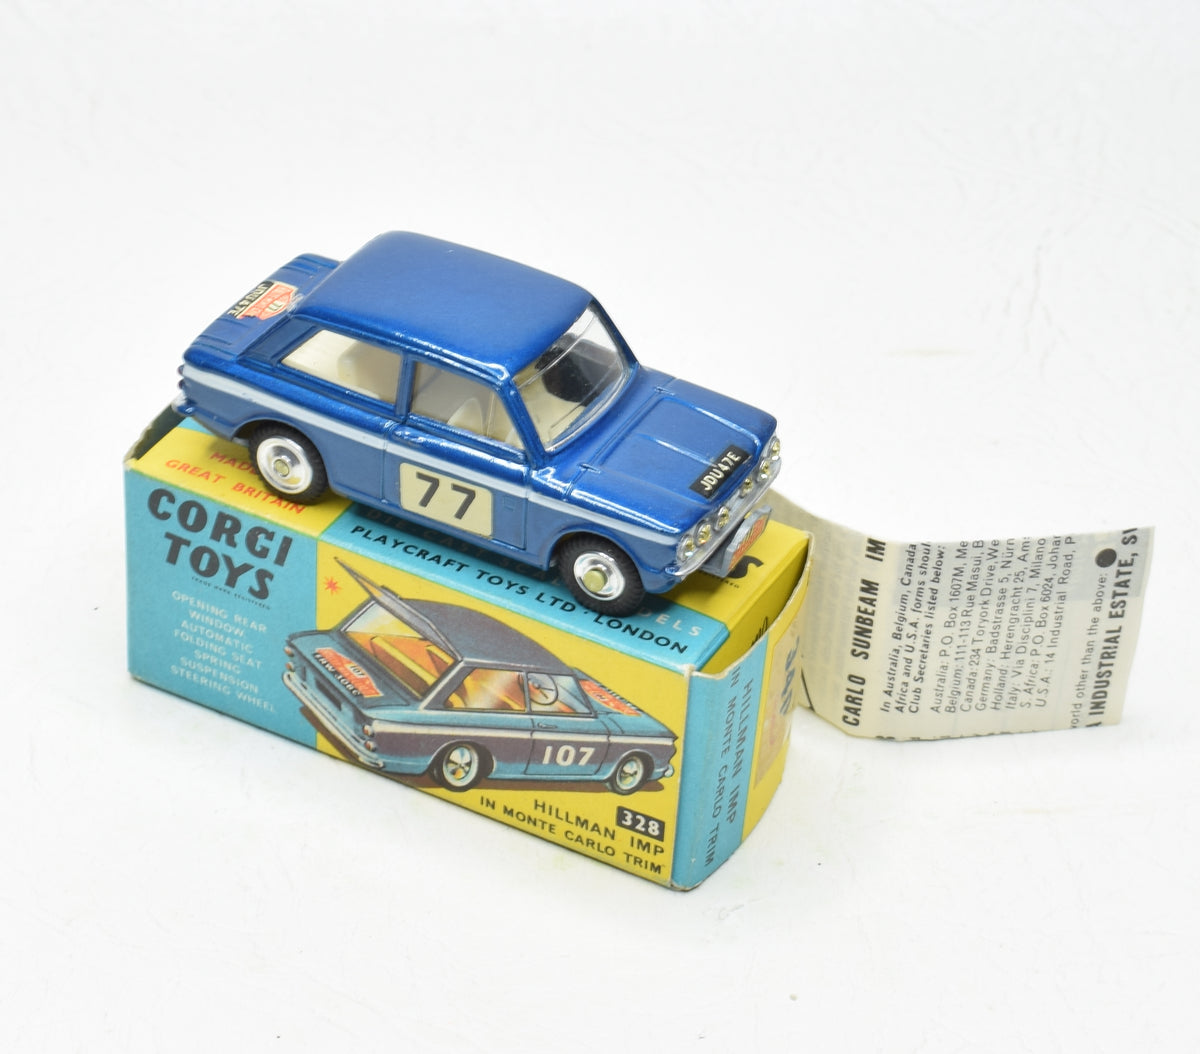 Corgi toys 340 Hillman Imp Very Near Mint/Boxed (Model specific leaflet)